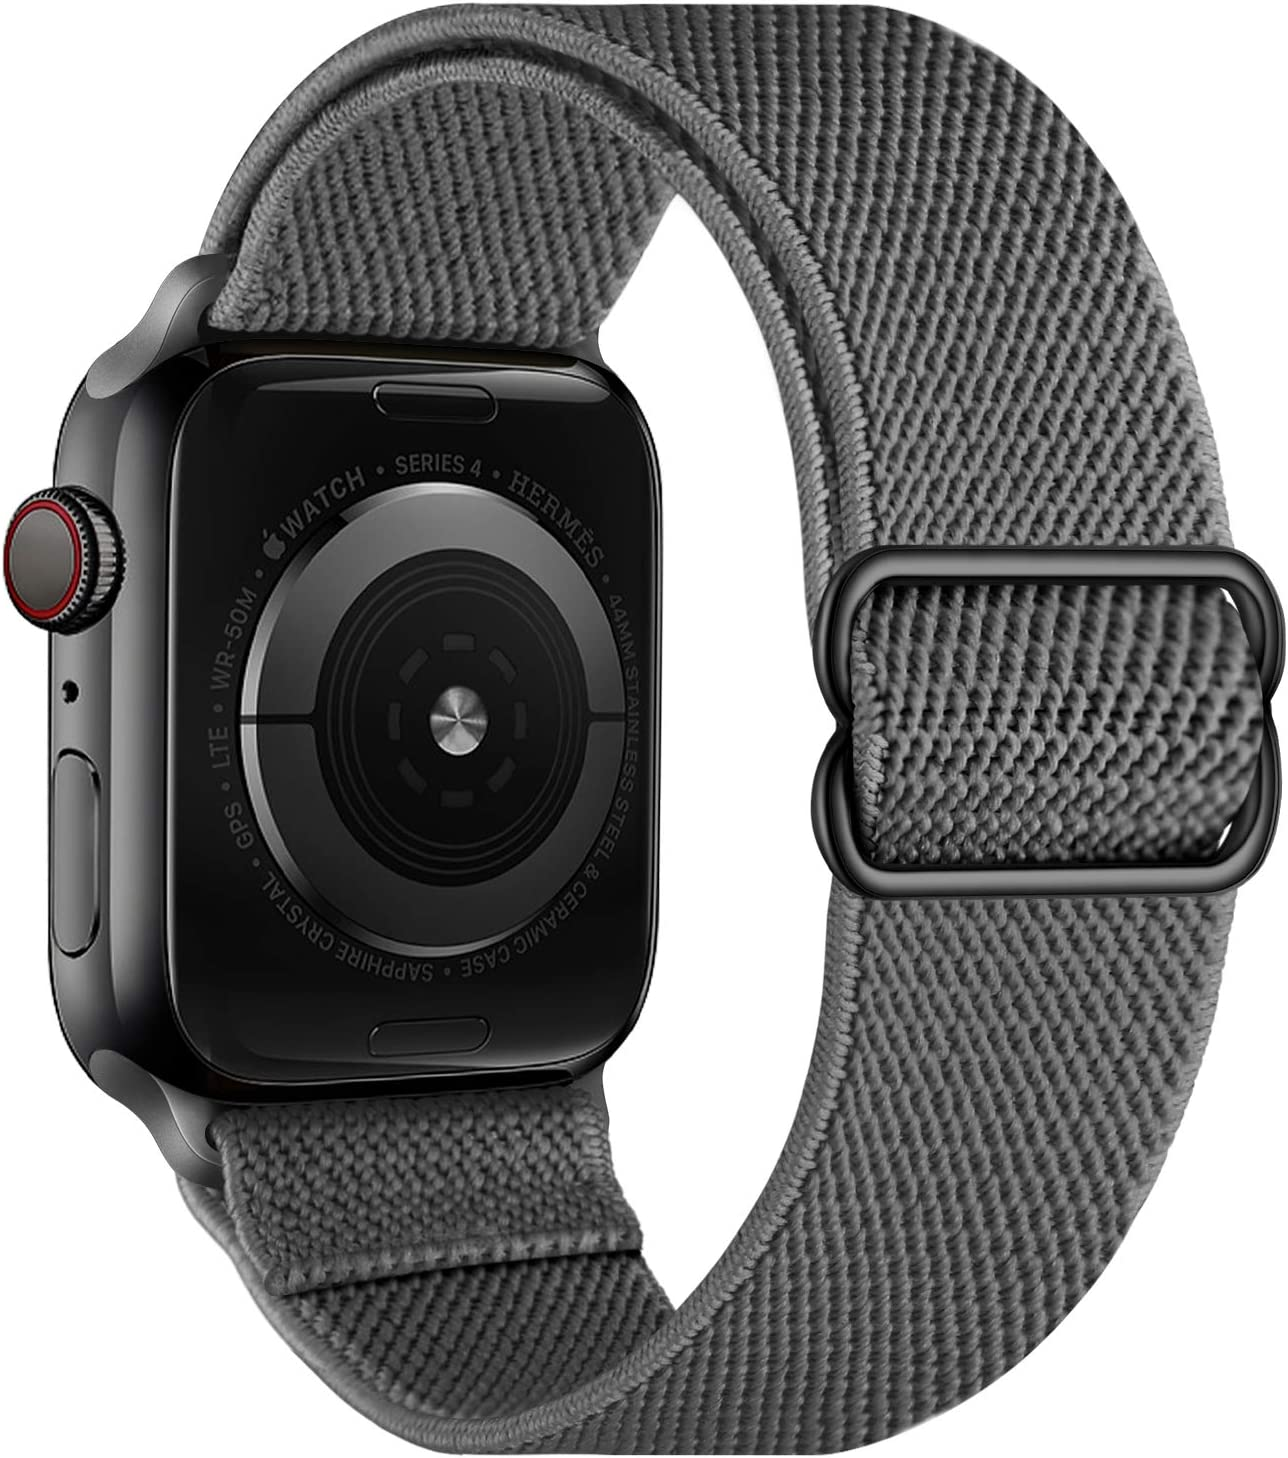 OXWALLEN Stretchy Nylon Solo Loop Compatible with Apple Watch Bands 42mm 44mm, Adjustable Elastic Braided Stretches Women Men Strap for iWatch SE Series 6/5/4/3/2/1,Deep Gray